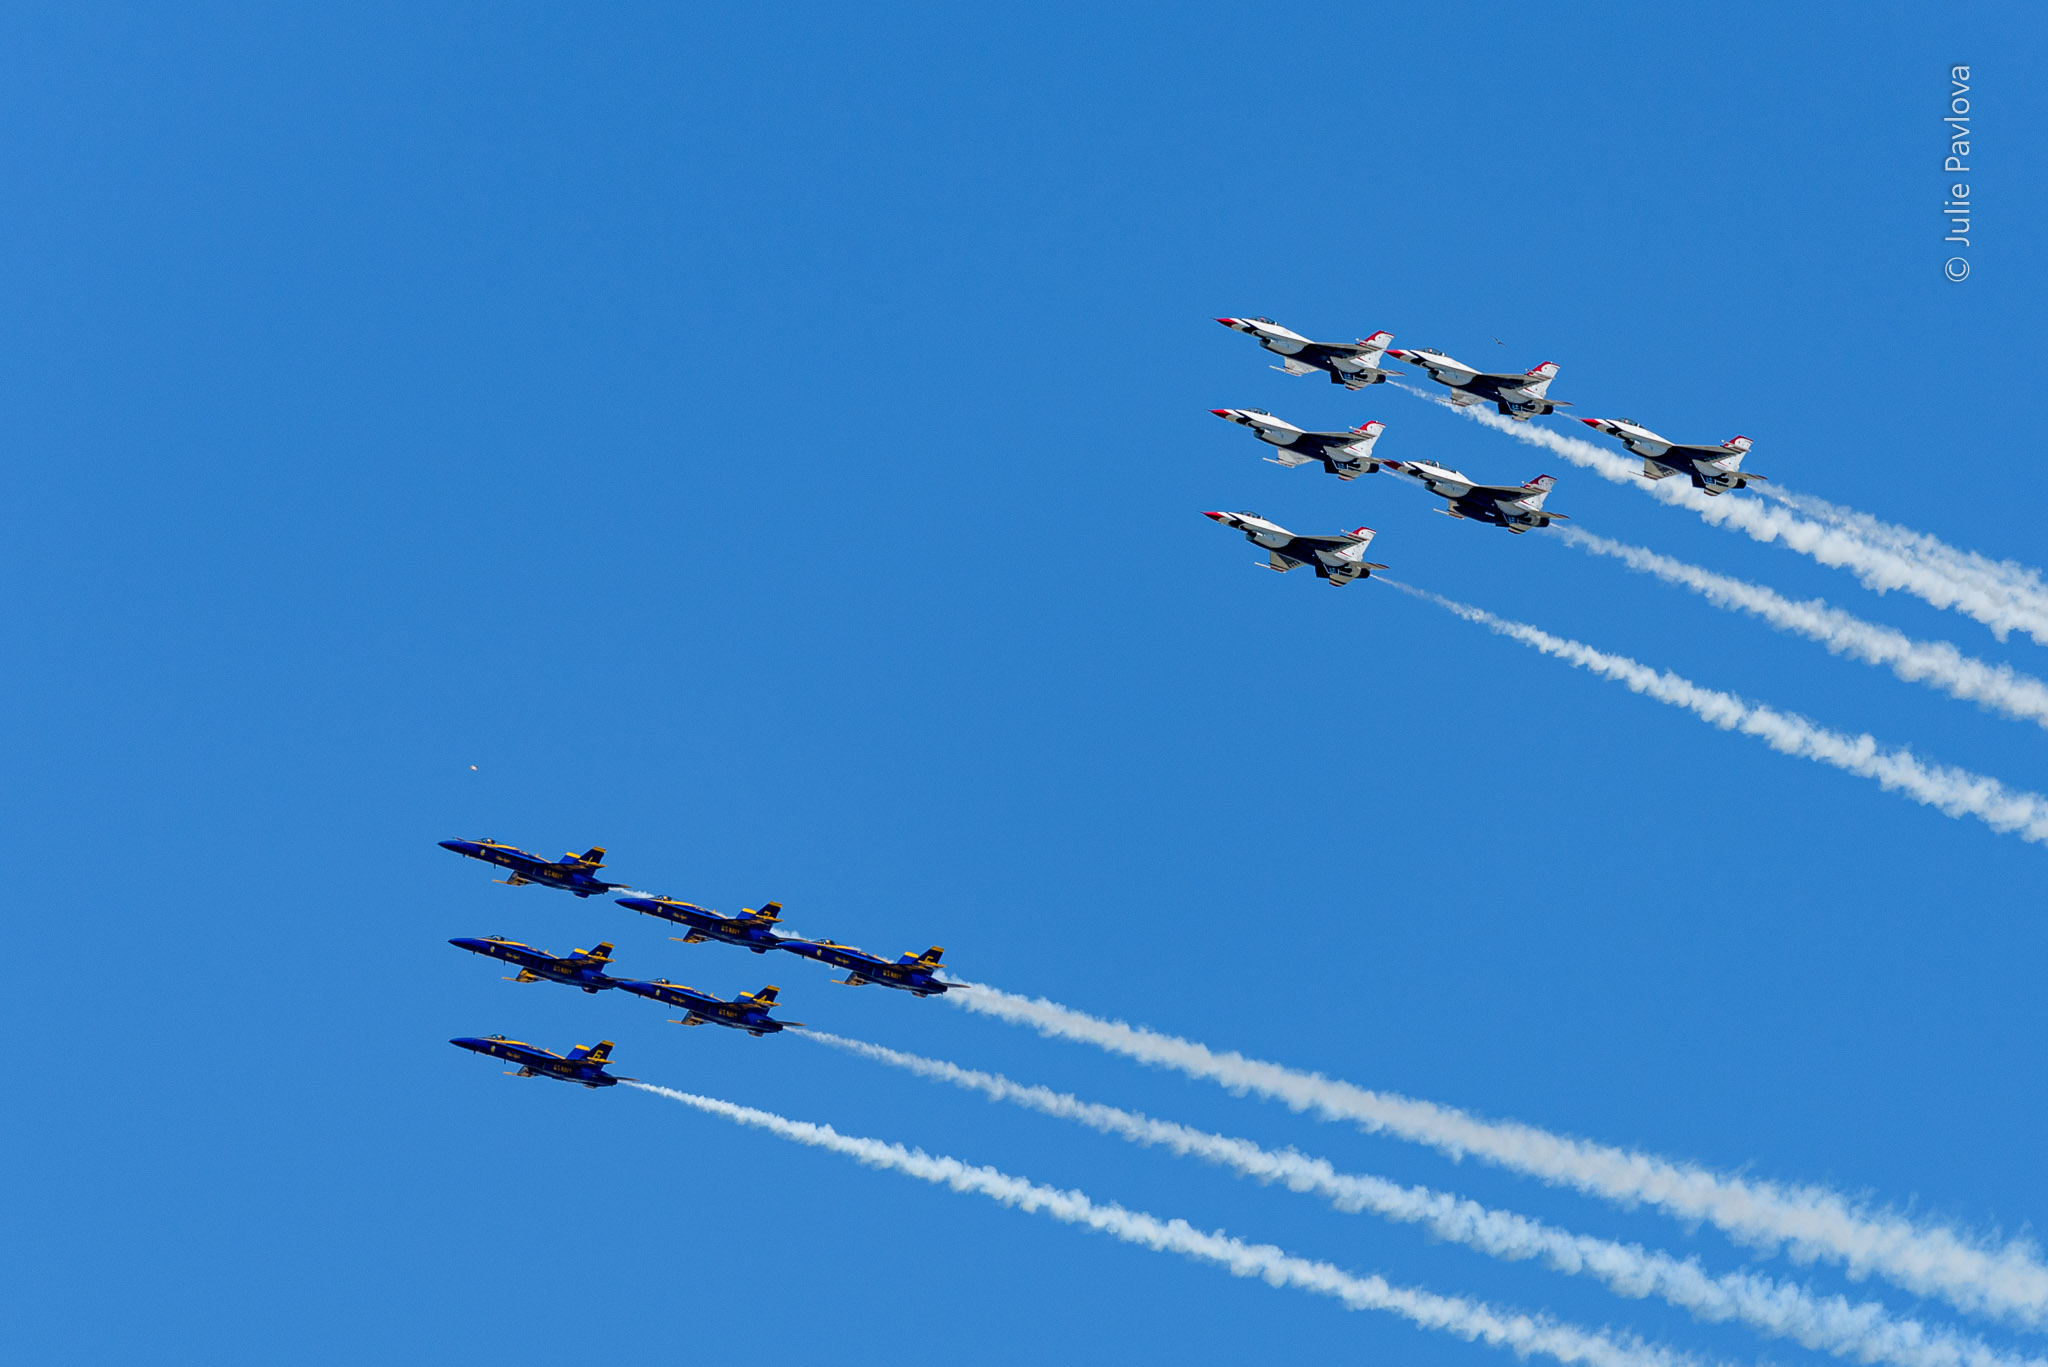 Blue Angels-Thunderbirds flyover to Salute New York Coronavirus Responders 04/29/2020 by Julie Pavlova Photography